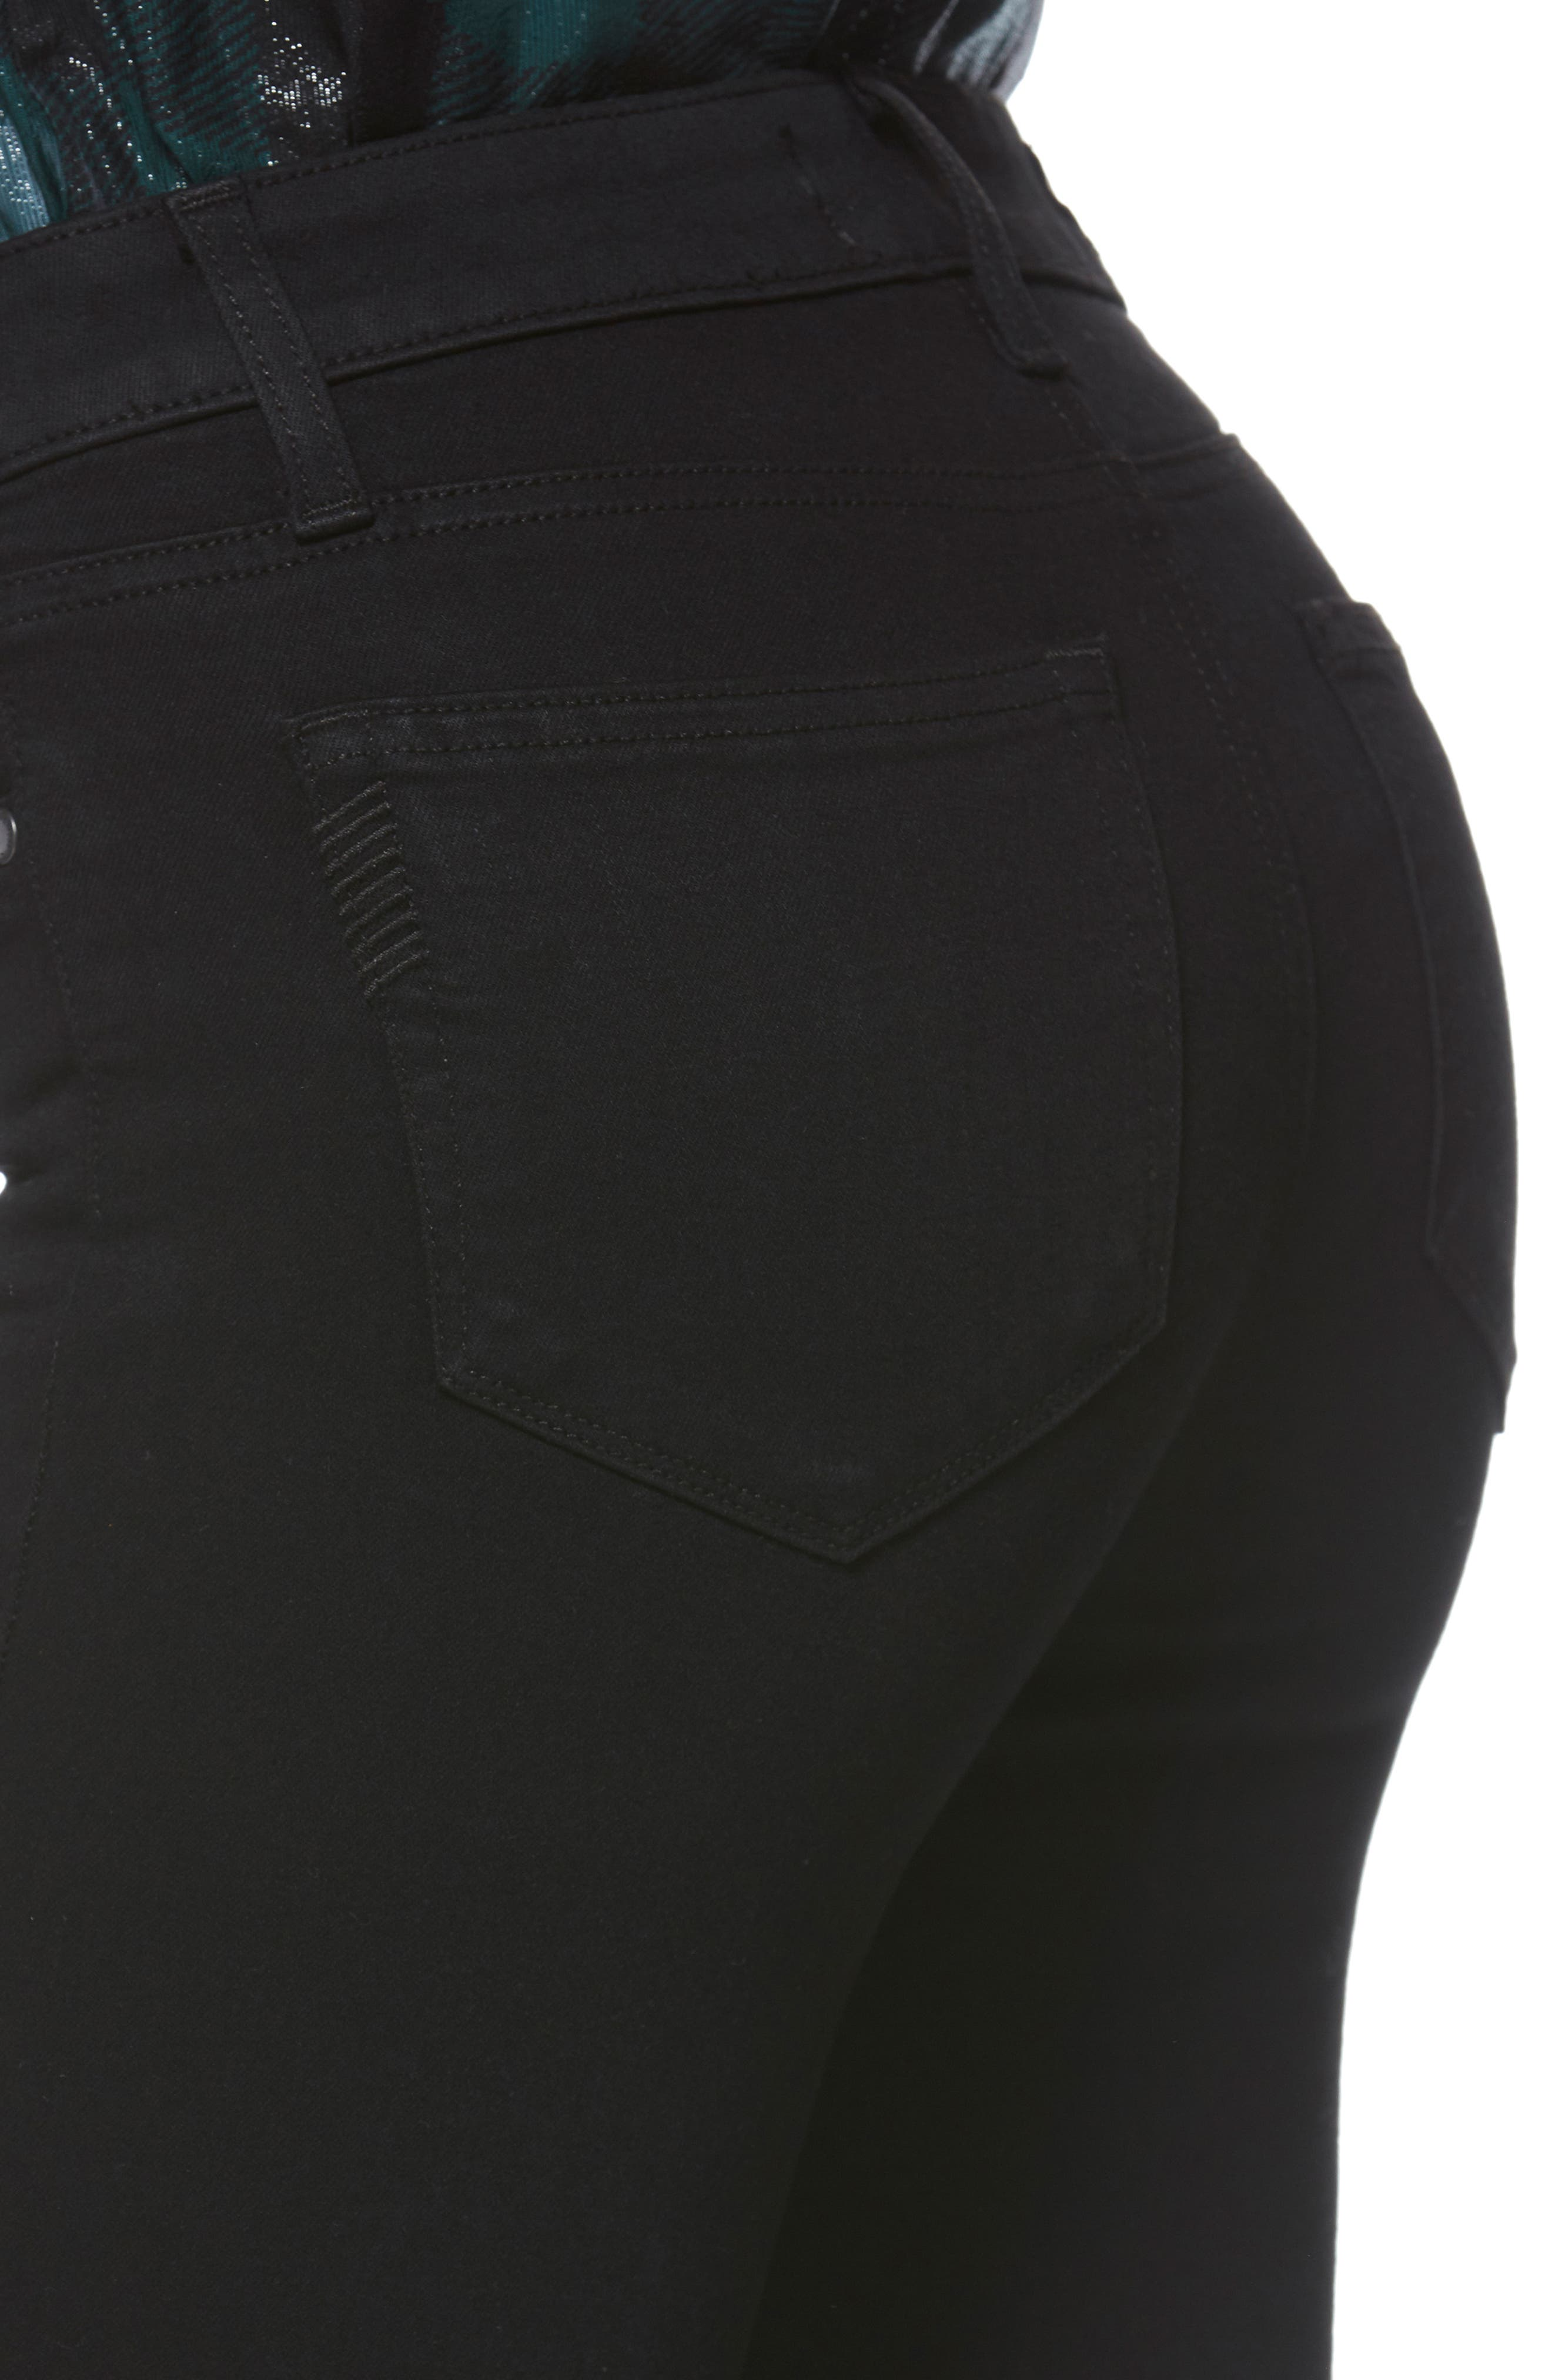 PAIGE, Transcend - Skyline Skinny Jeans, Alternate thumbnail 7, color, BLACK SHADOW